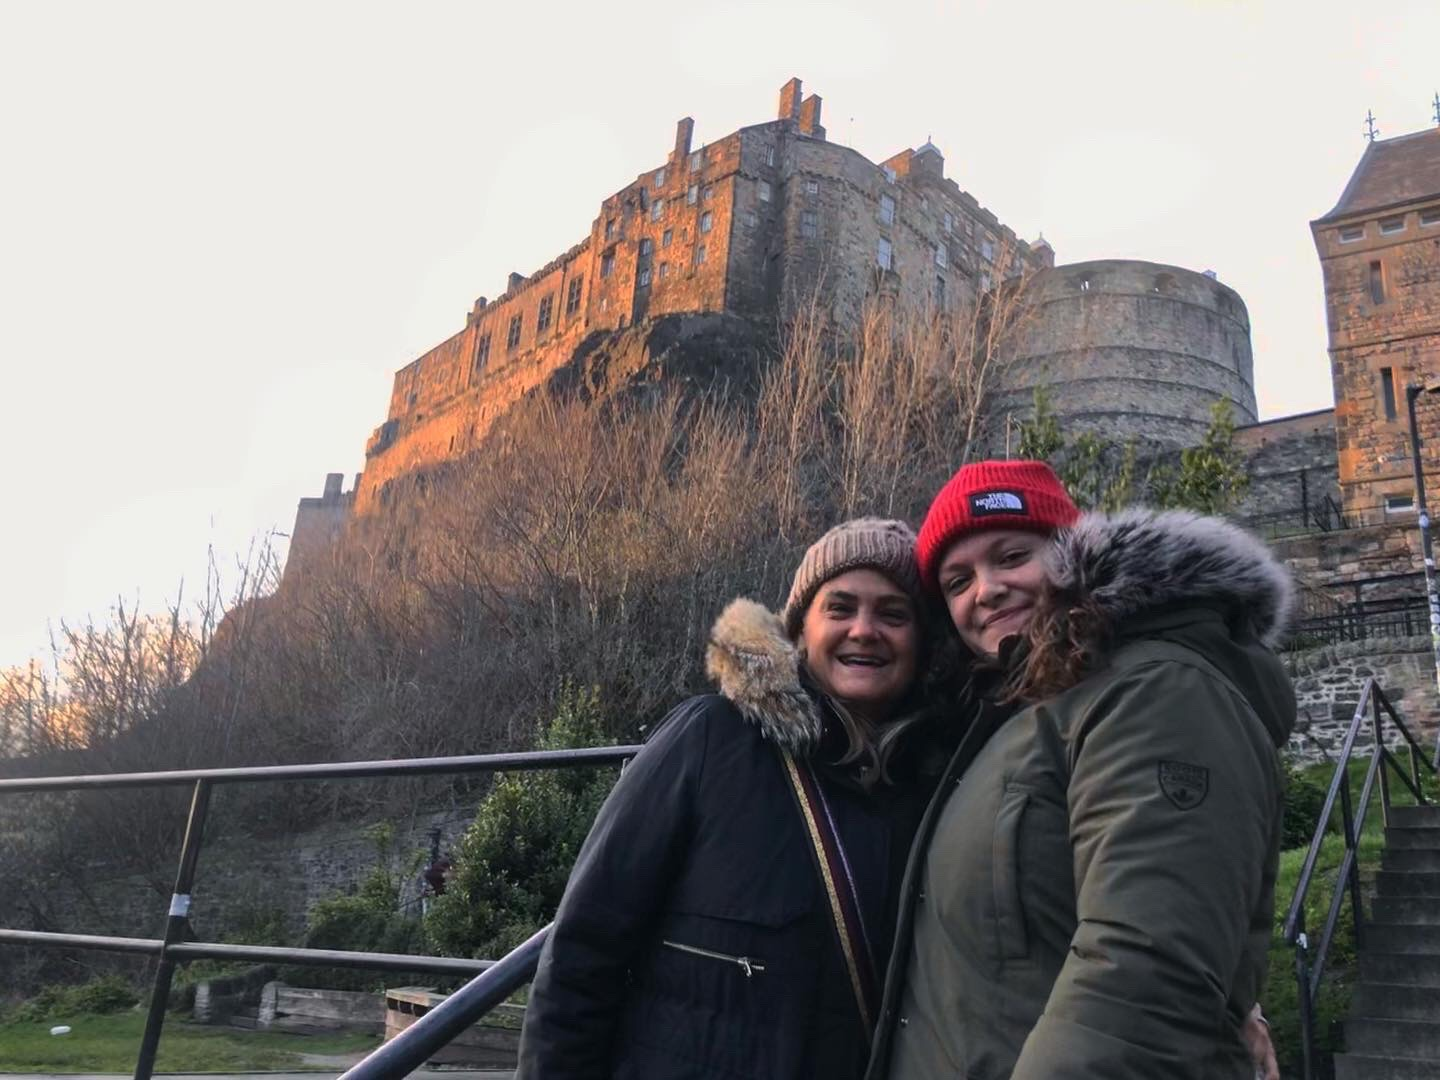 Francesca and her mom smiling in front of the Edinburgh castle